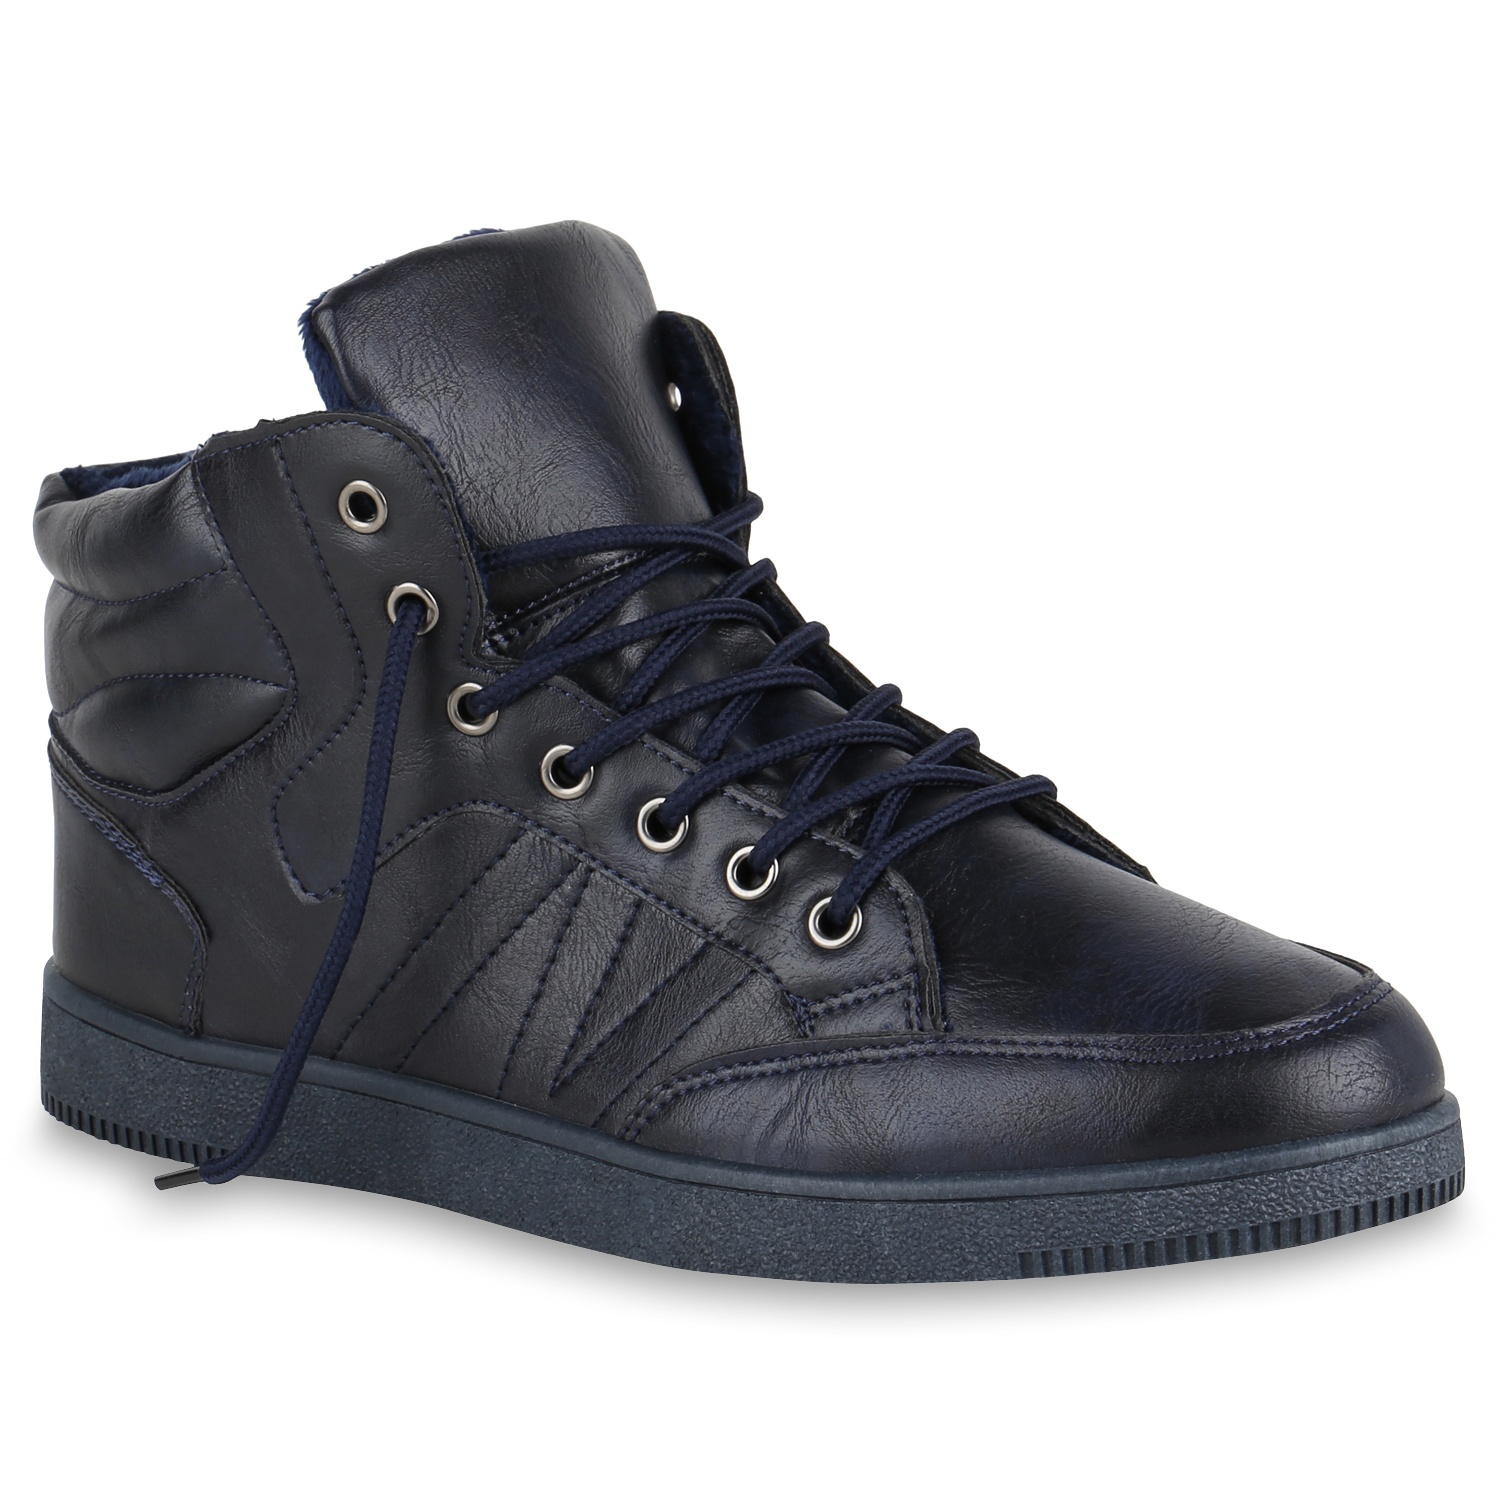 herren sneakers warm gef tterte winter sneaker high profil schuhe 819516 mode ebay. Black Bedroom Furniture Sets. Home Design Ideas